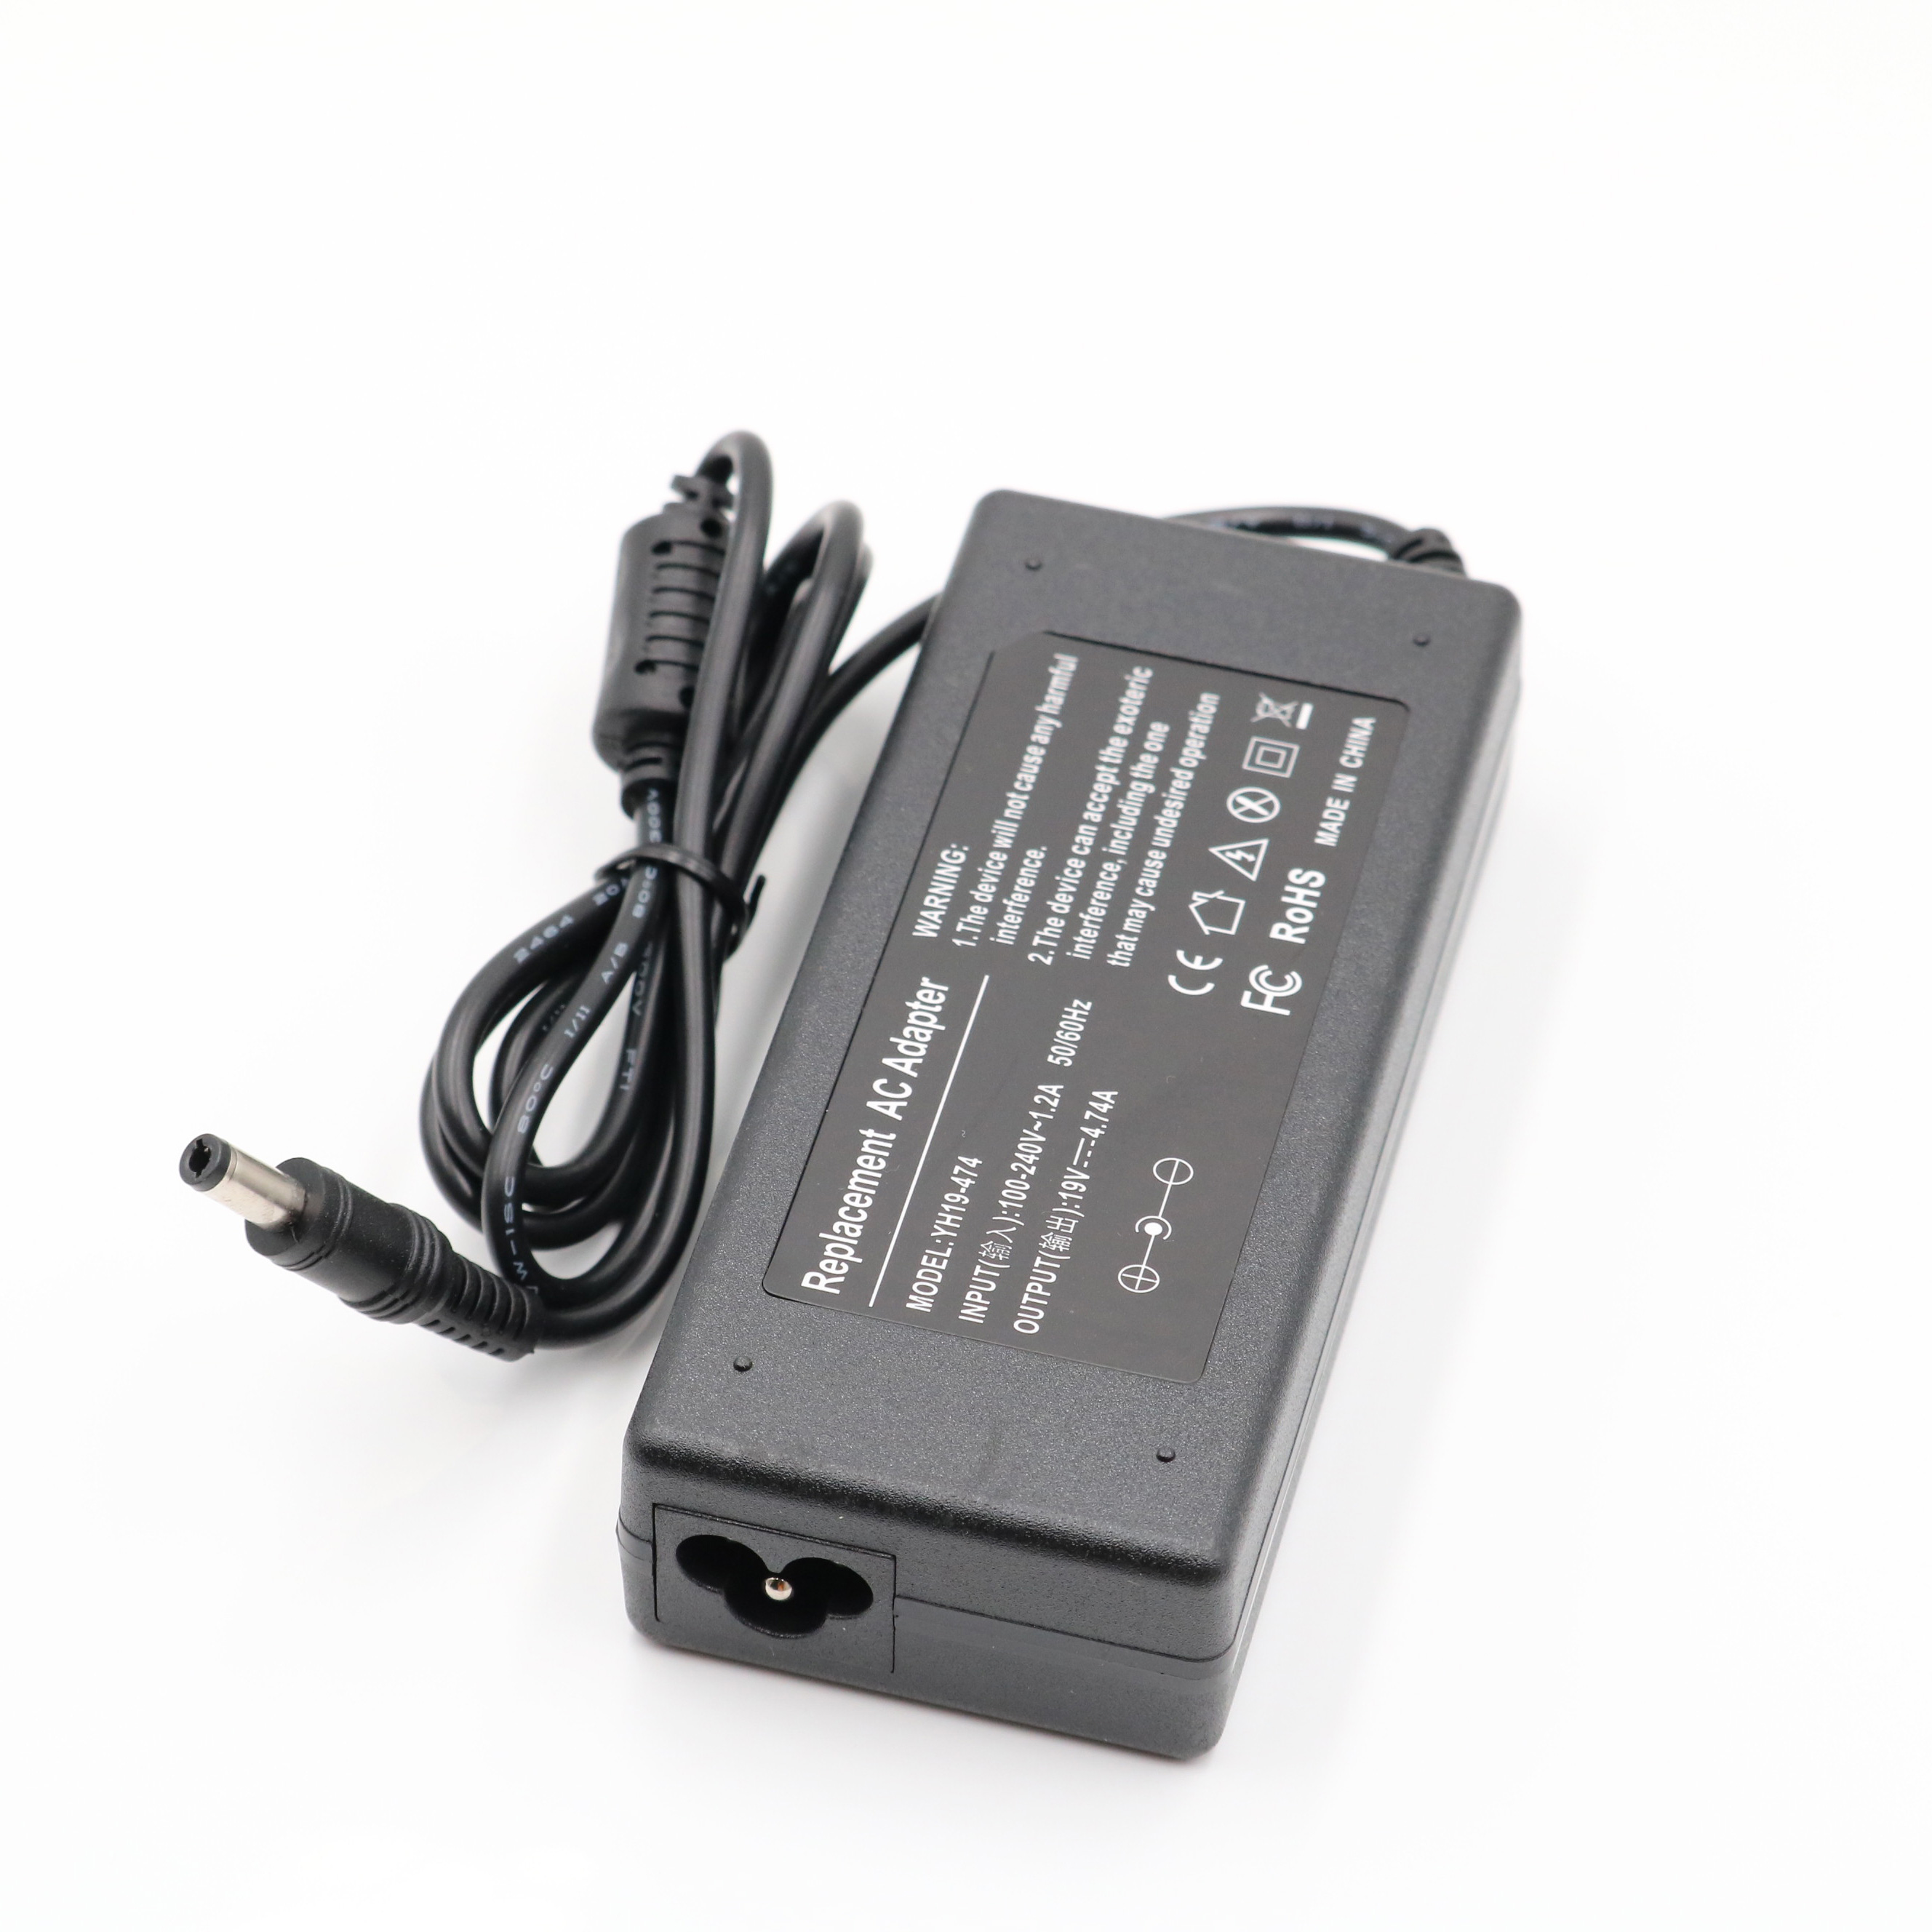 19V 4.74A AC Power Supply Notebook Adapter Charger ASUS Laptop A46C X43B A8J K52 U1 U3 S5 W3 W7 Z3 Toshiba/HP DC Plug 5.5*2.5mm